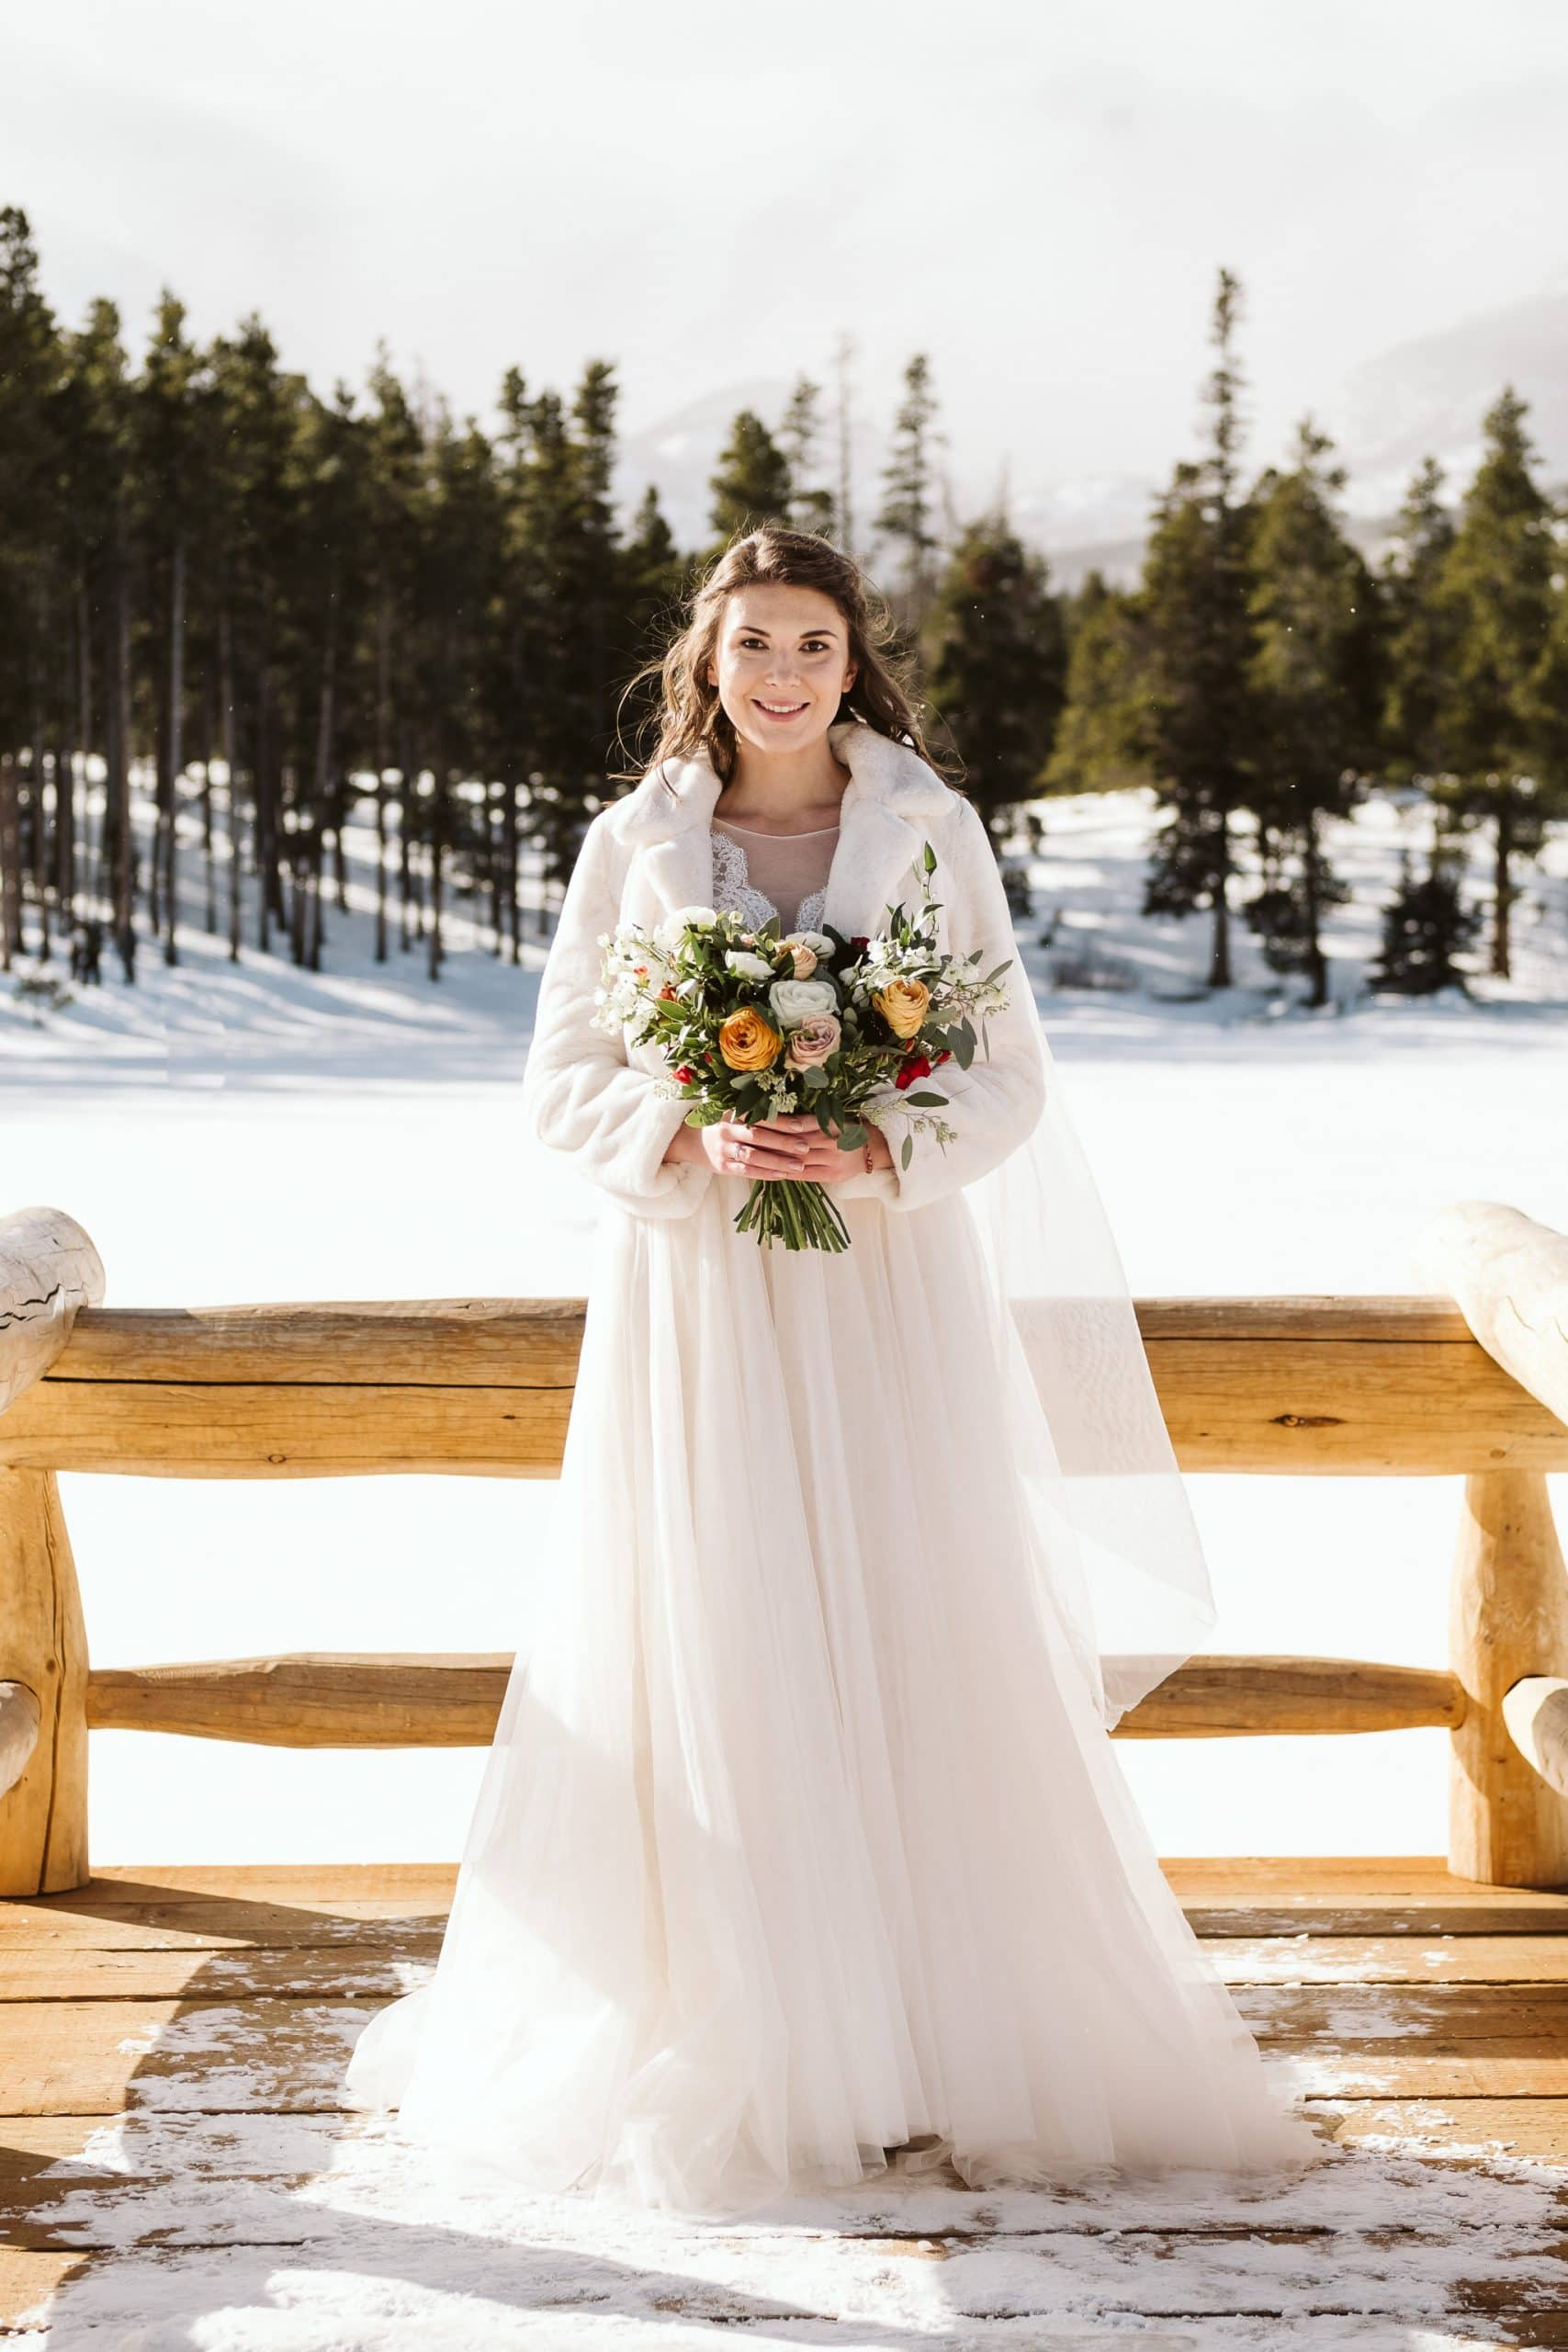 Bridal portrait at Sprague Lake elopement in Rocky Mountain National Park in winter.